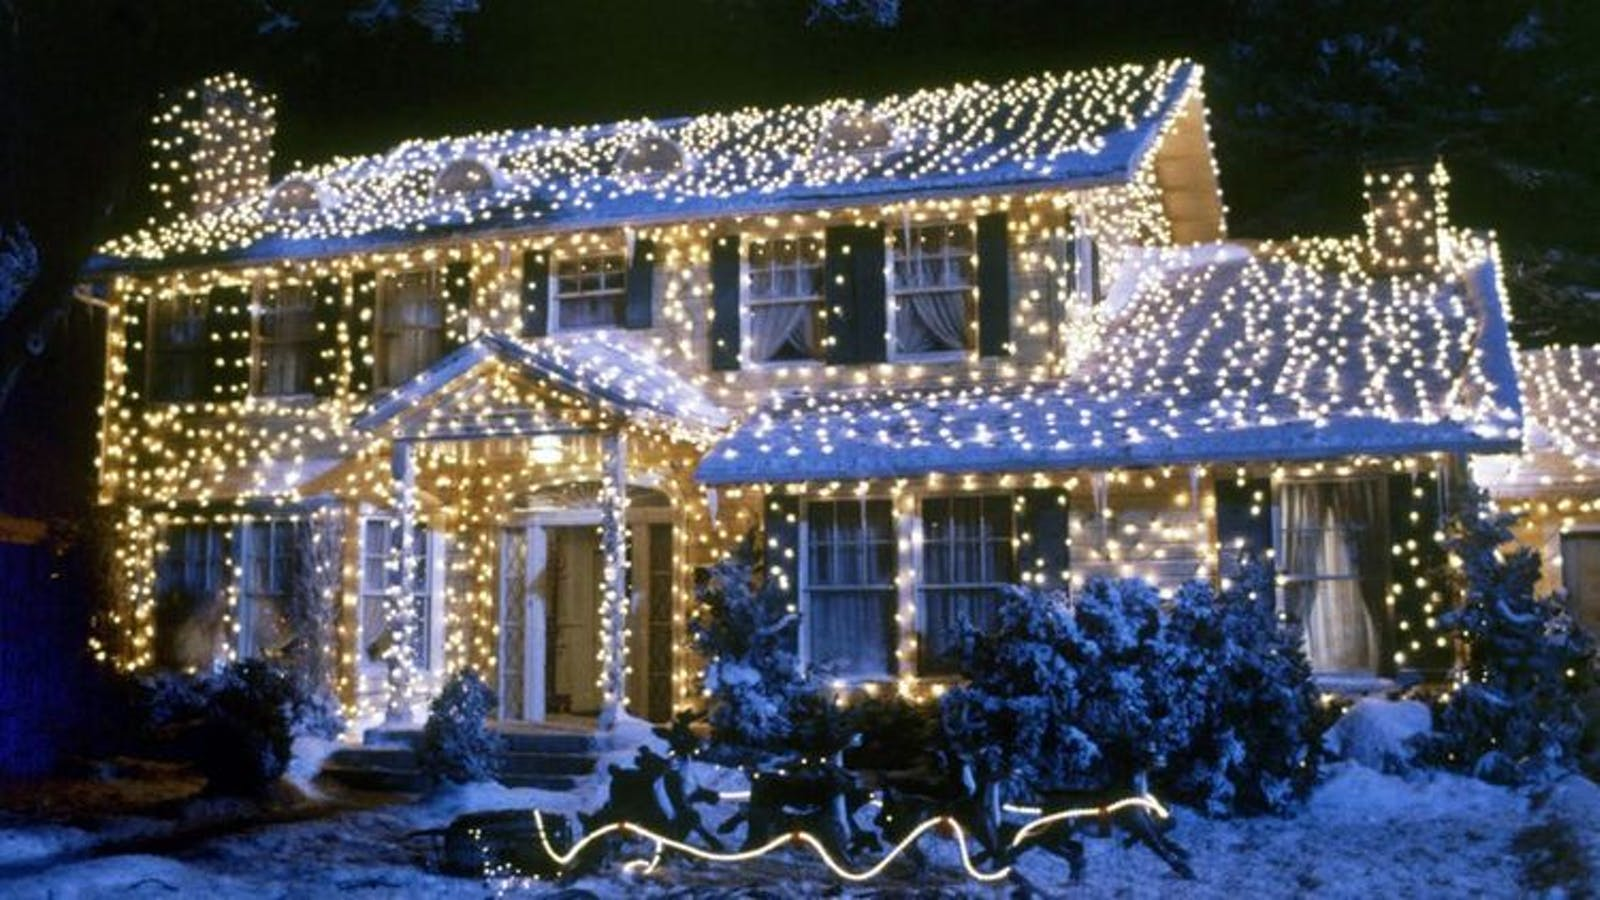 House from National Lampoon's Vacation movie, decked in fairy lights